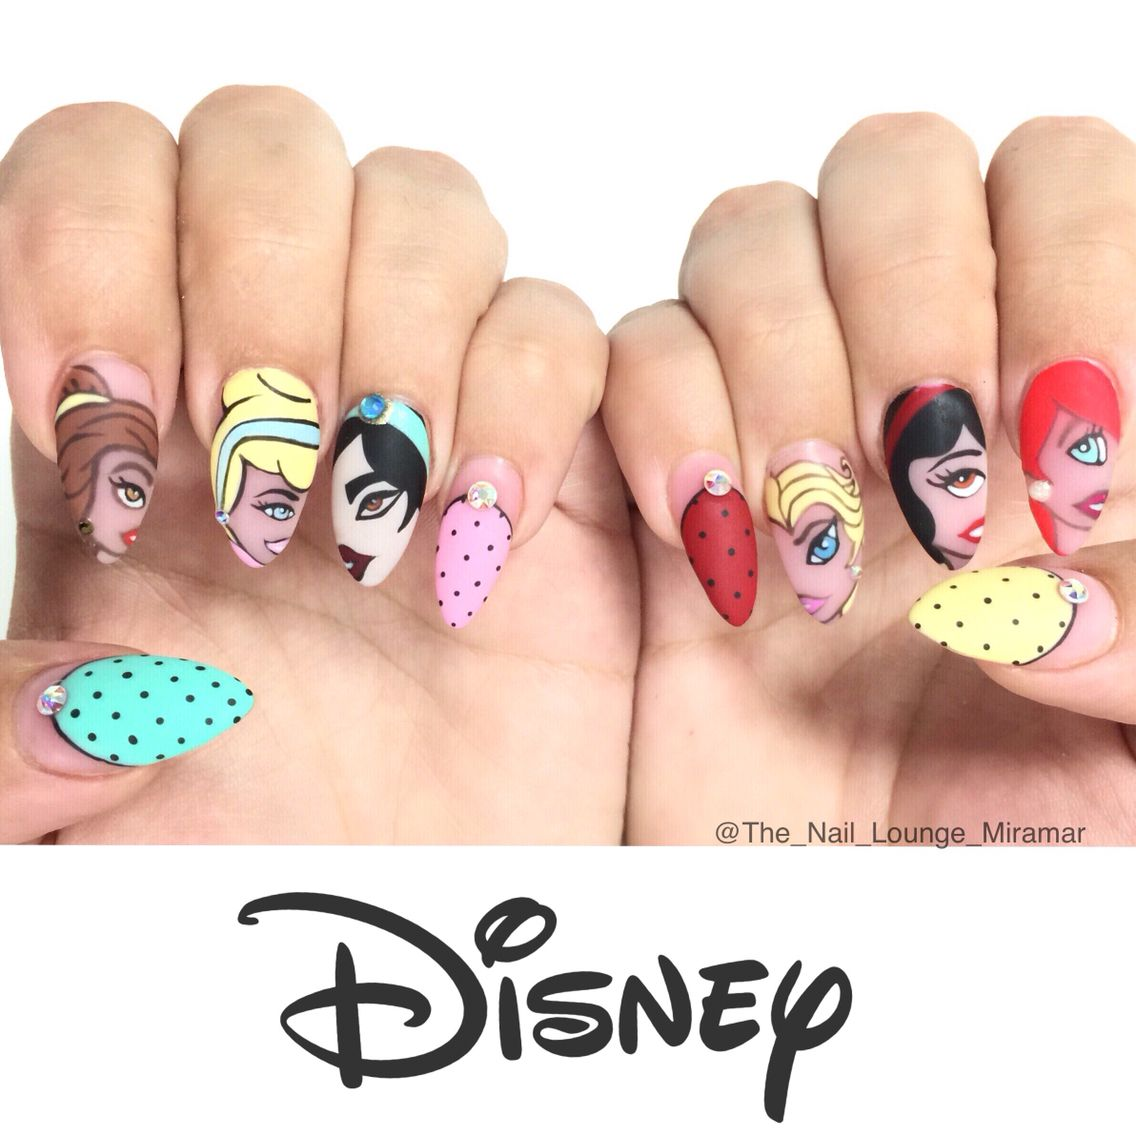 Disney\'s Princess nails art design | Arte de uñas | Pinterest